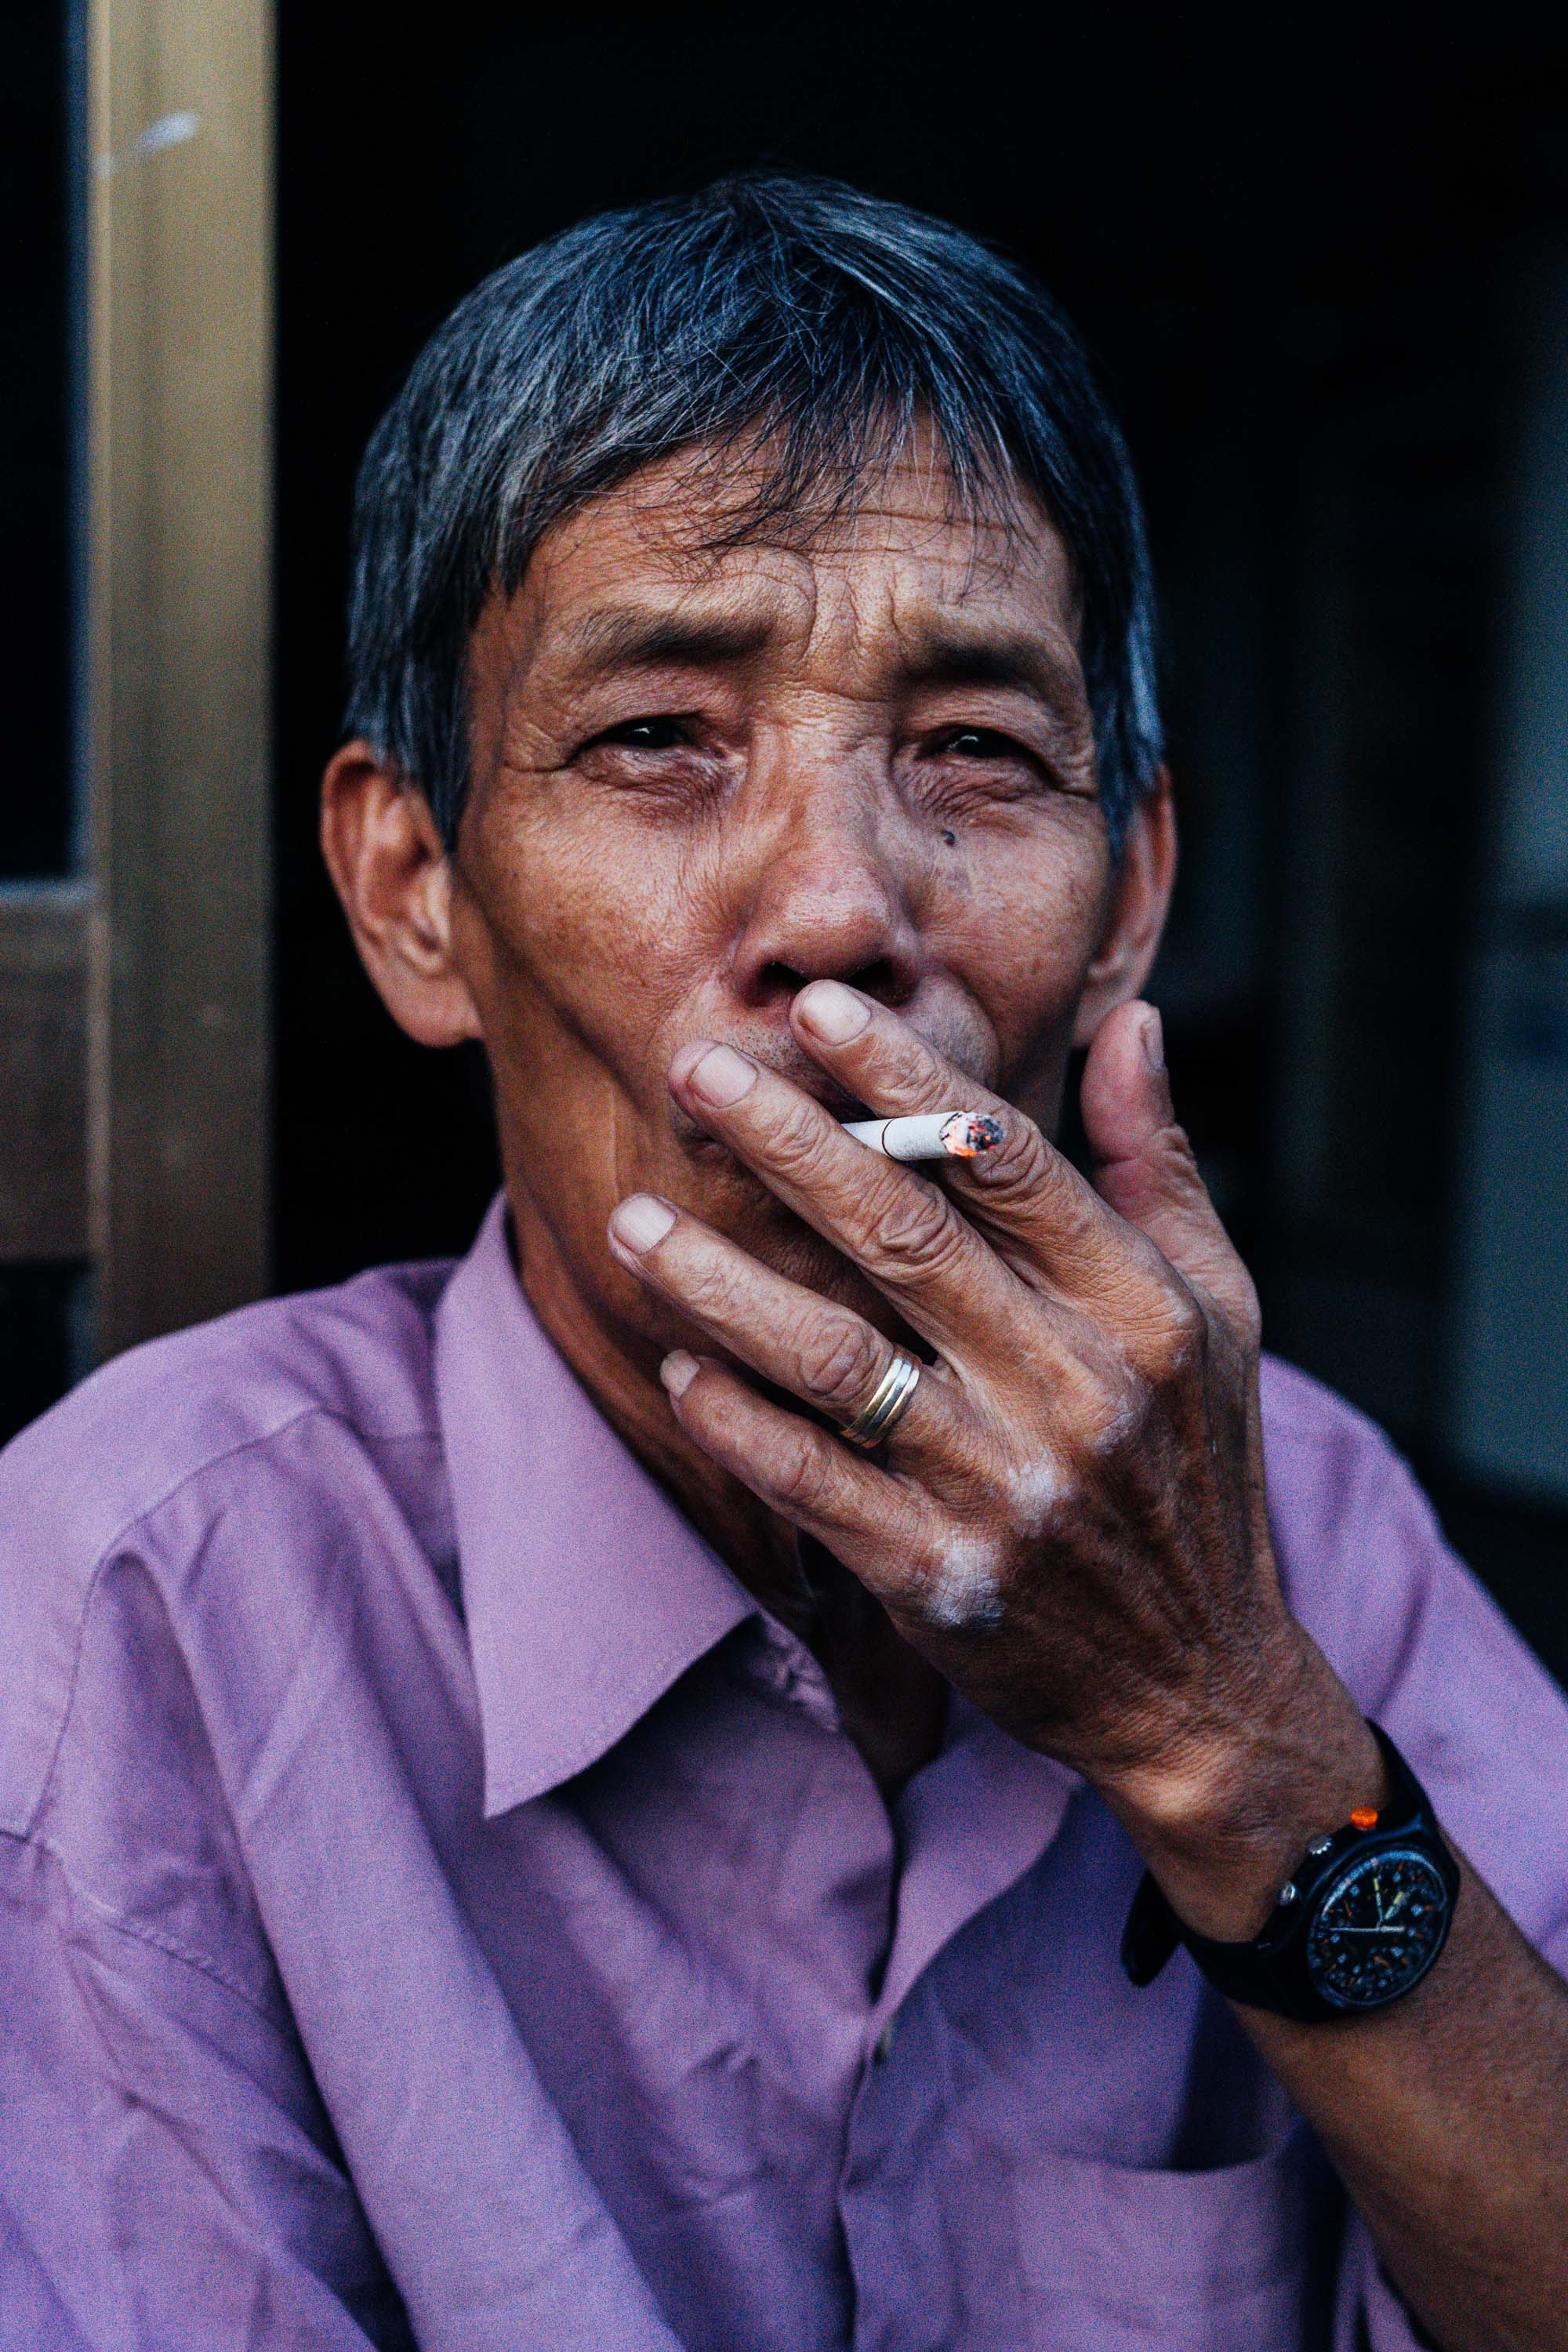 Portrait of a Vietnamese Man Smoking  - Greg Mionske - Advertising and Editorial Photographer in Denver